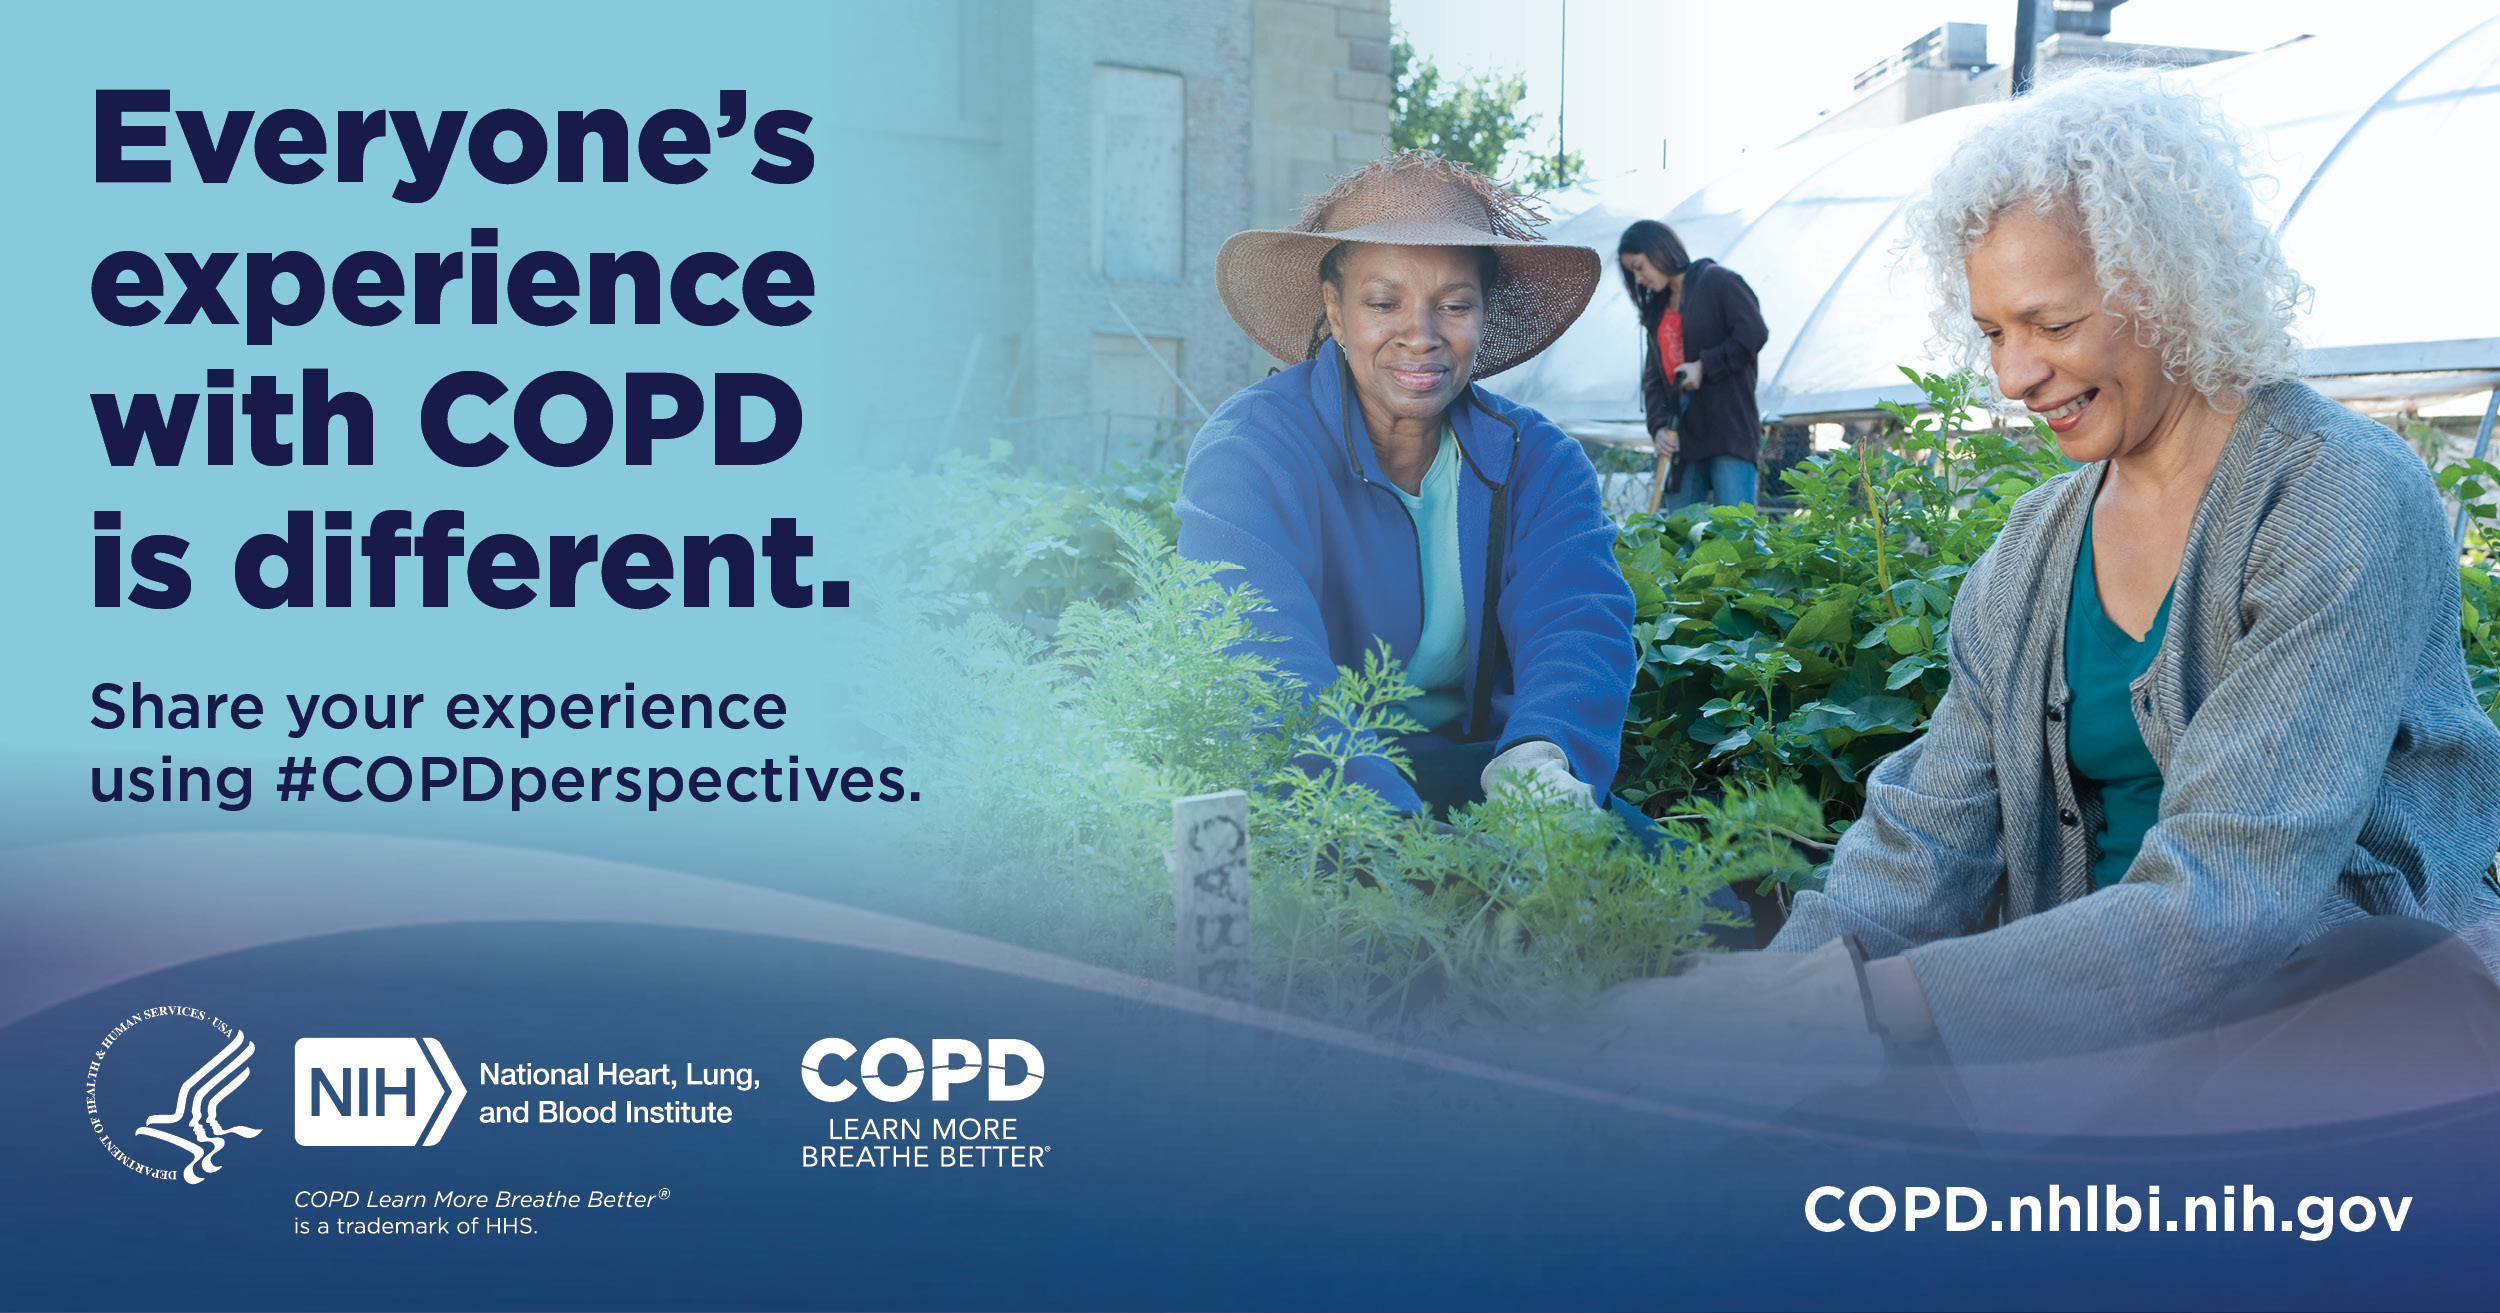 Everyone's experience with COPD is different. #COPDjourney. COPD.nhlbi.nih.gov.